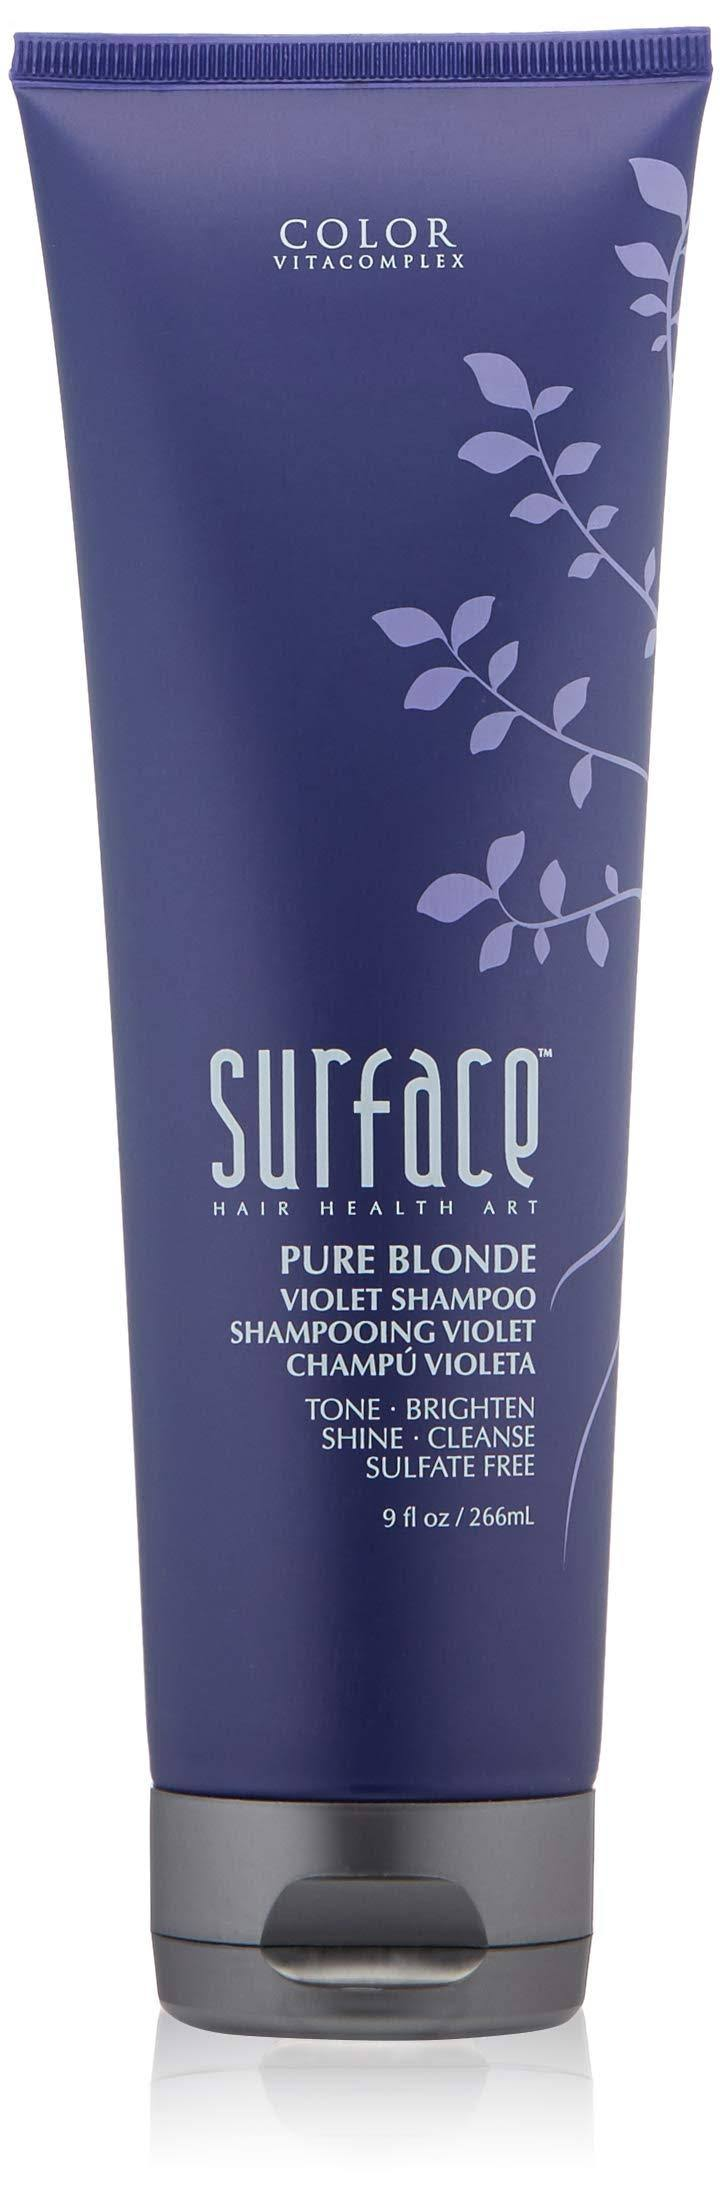 Surface Pure Blonde Violet Shampoo - 270ml